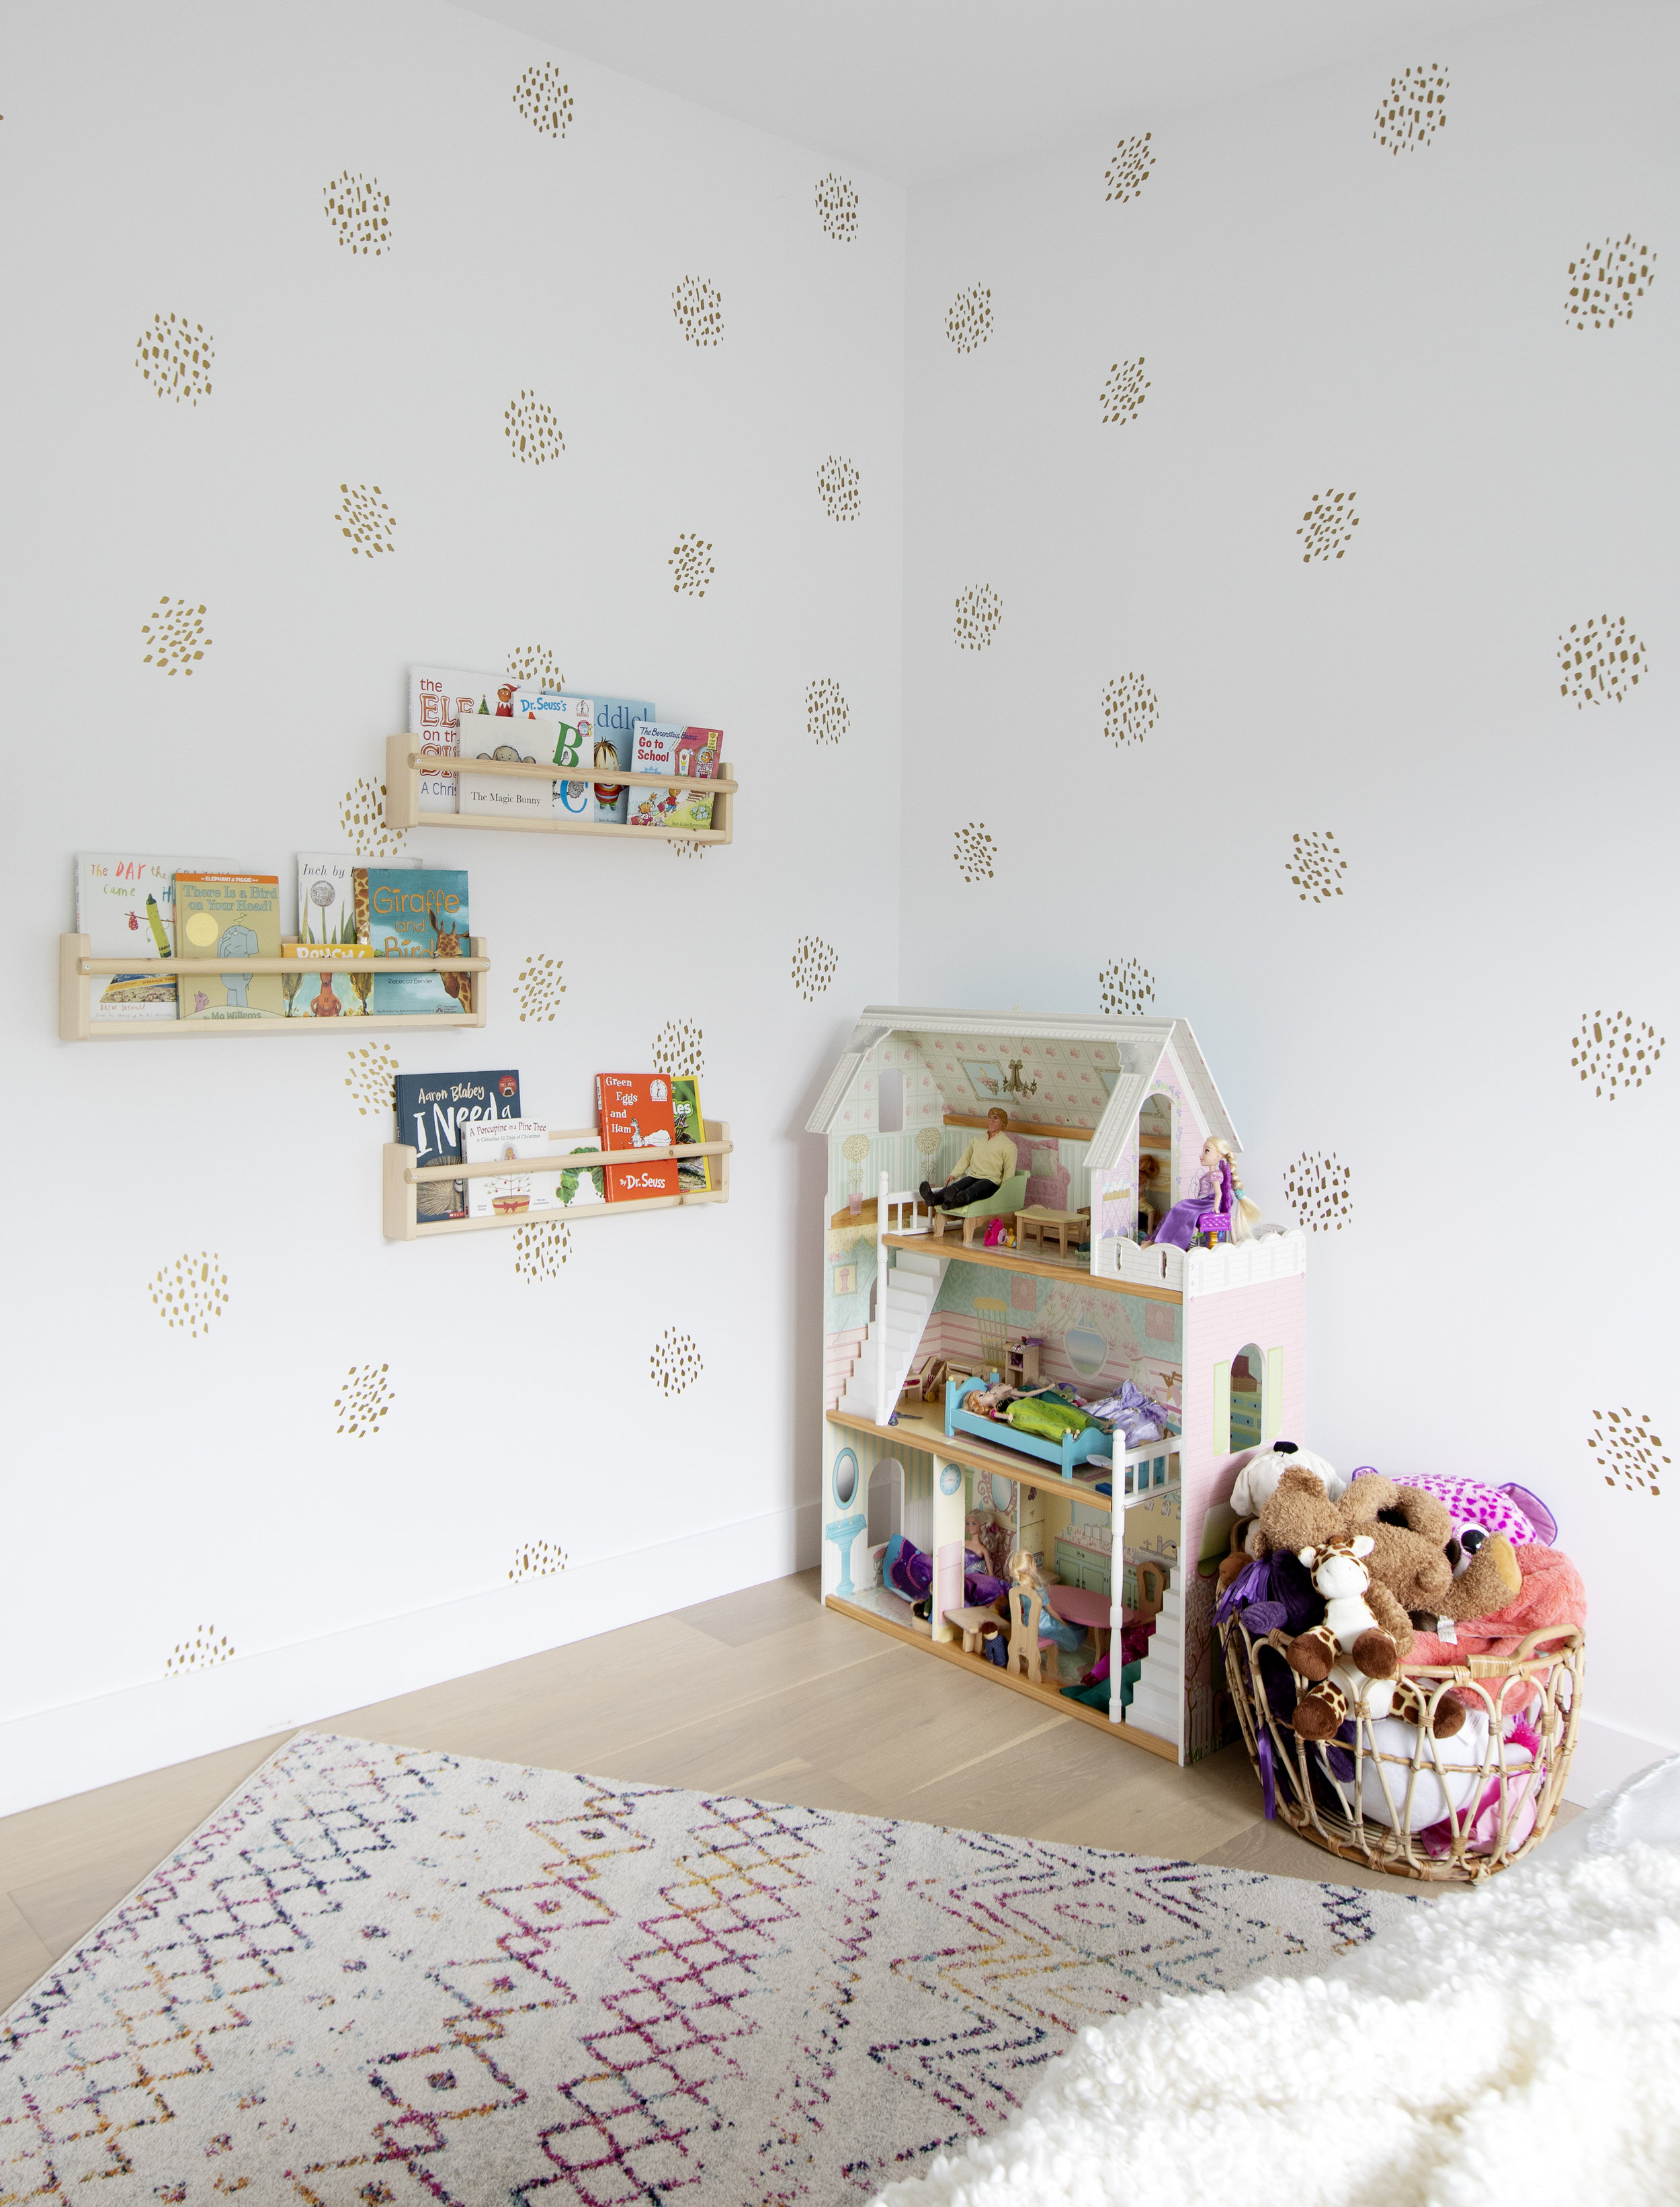 The corner of an older child's bedroom is home to a dollhouse and basket of stuffed animals as well as a custom book shelving affixed to the wall.